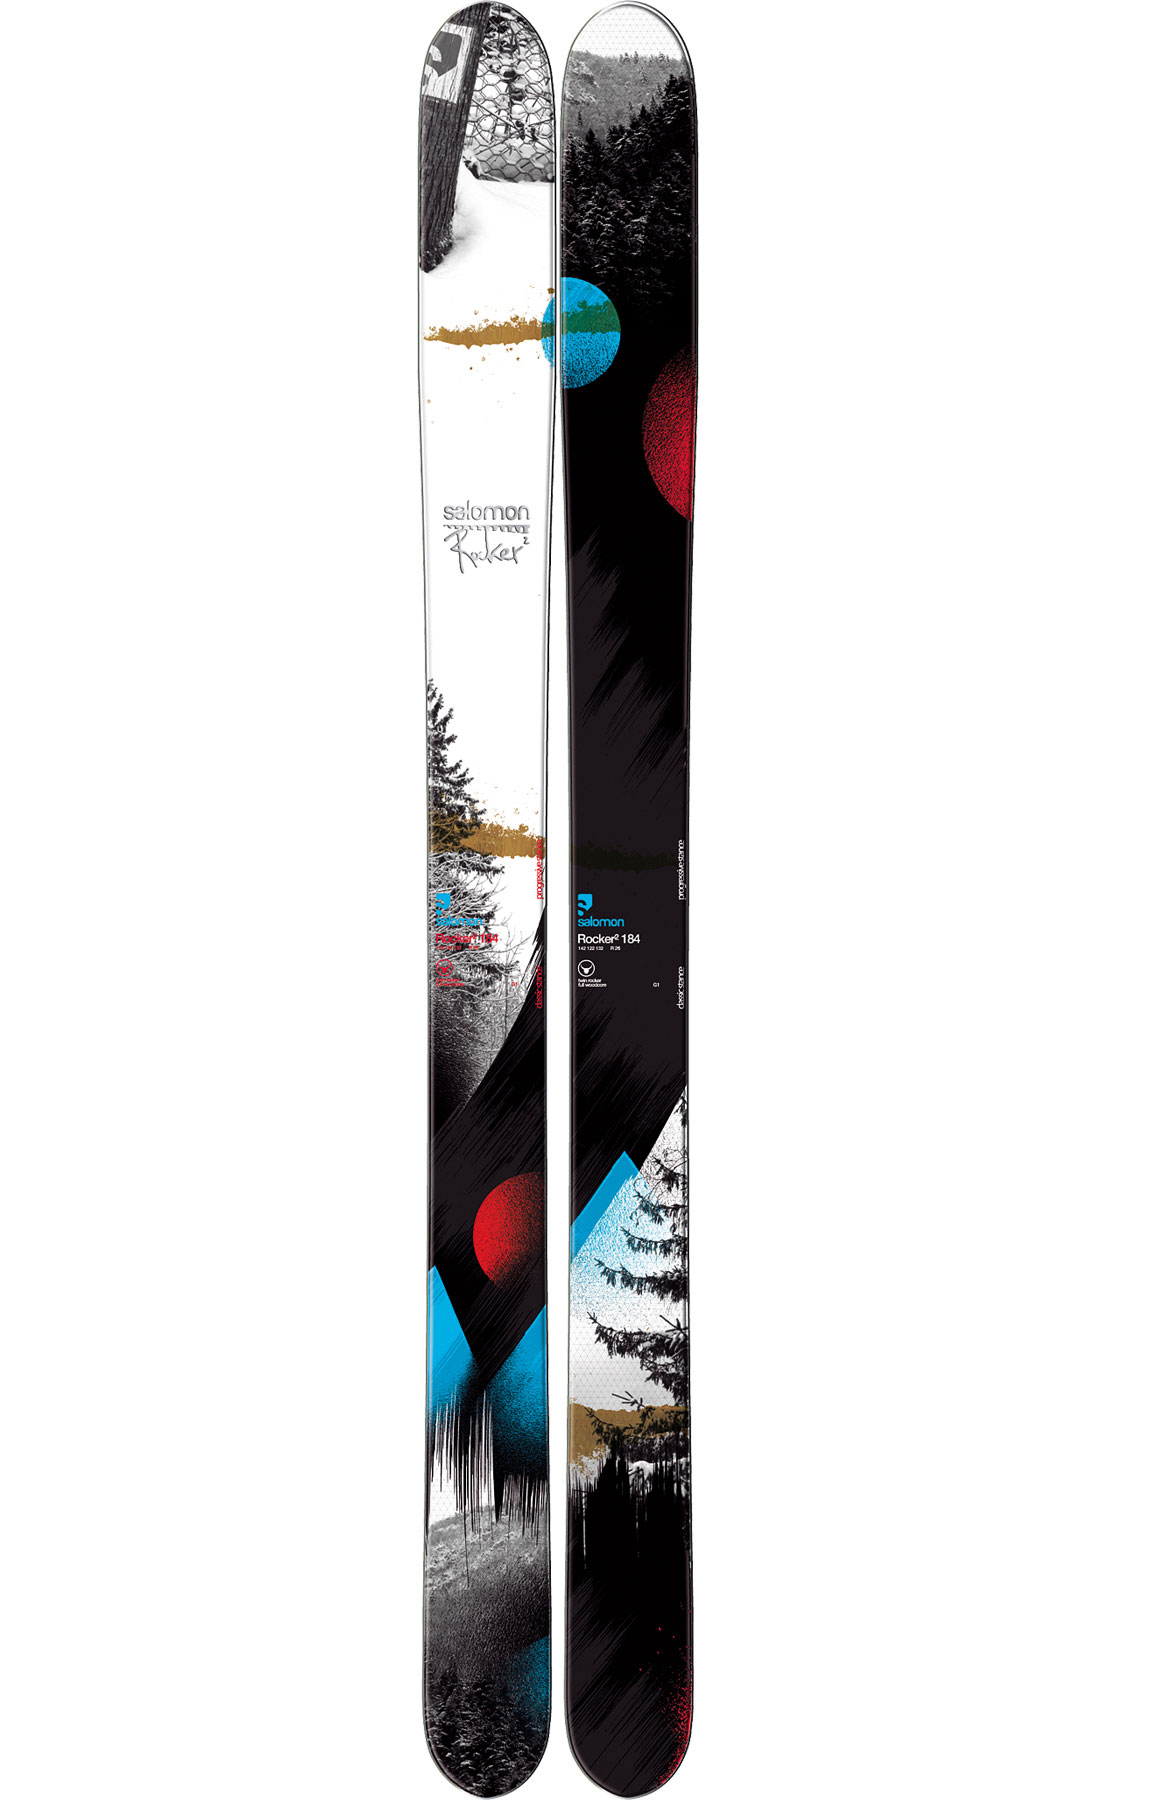 Ski Freeskiers who enjoy powder and fat skis, looking for the latest powder weapon need to check out the Salomon Rocker 2 Skis.Key Features of the Salomon Rocker 2 Skis: Edgy Monocoque Full Woodcore Wide edges Total edge reinforcement Edge Free extremities Honey Comb tip & tail Pulse Pad Powder Rocker Sidecut: 137/115/127 (170), 139/115/129 (180), 142/122/132 (184), 144/122/134 (192) Radius:: 20.3 (170), 20.3 (180), 26.0 (184), 26.0 (192) - $486.95